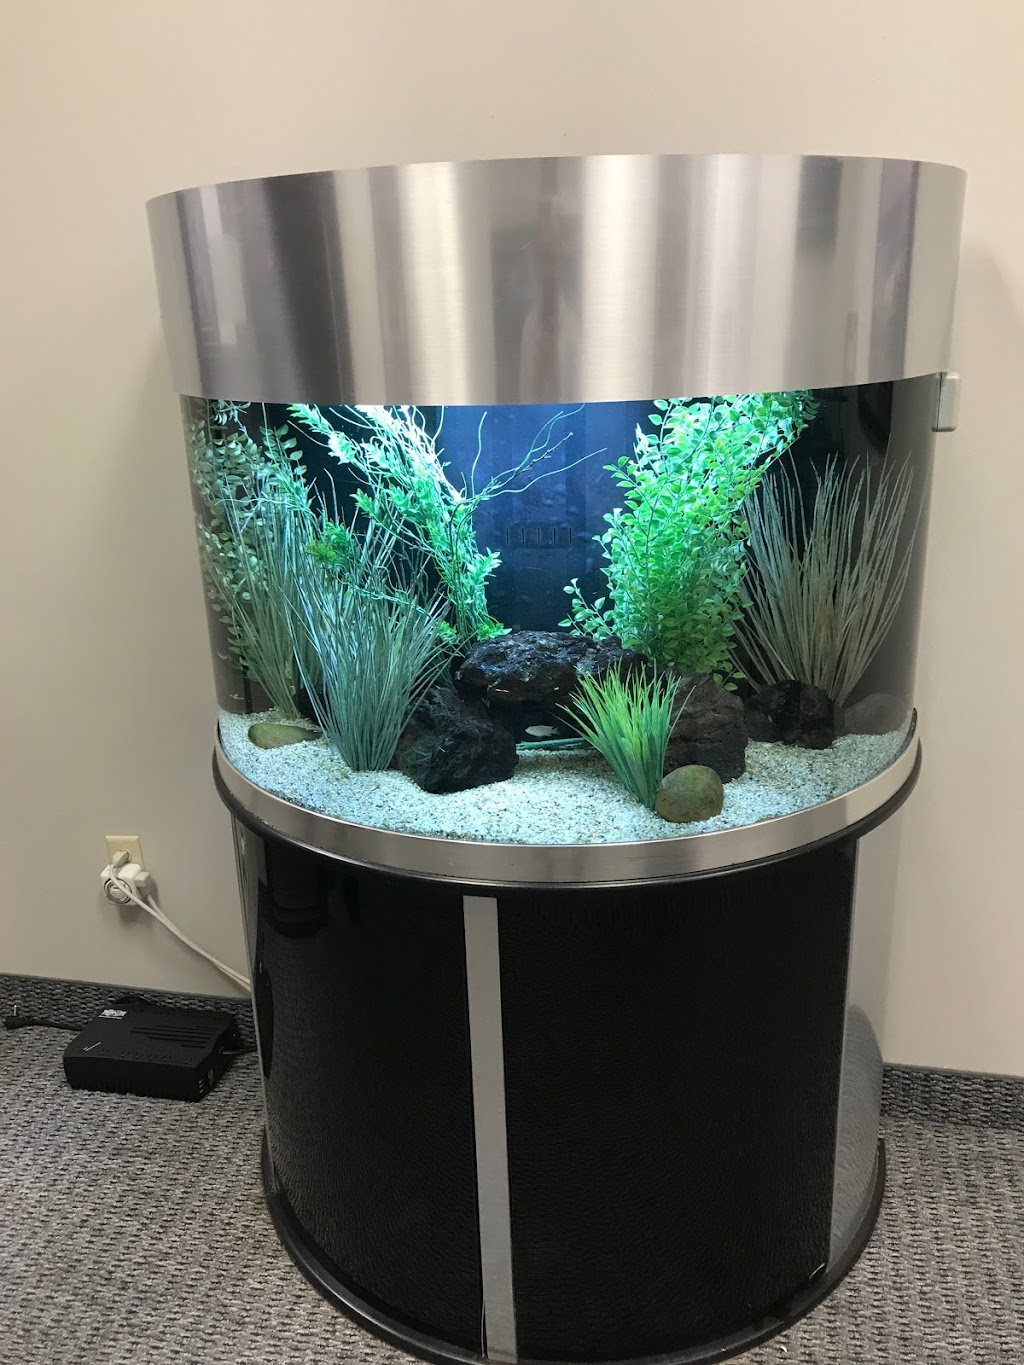 Aquarium service sells Fort Worth Dallas TX